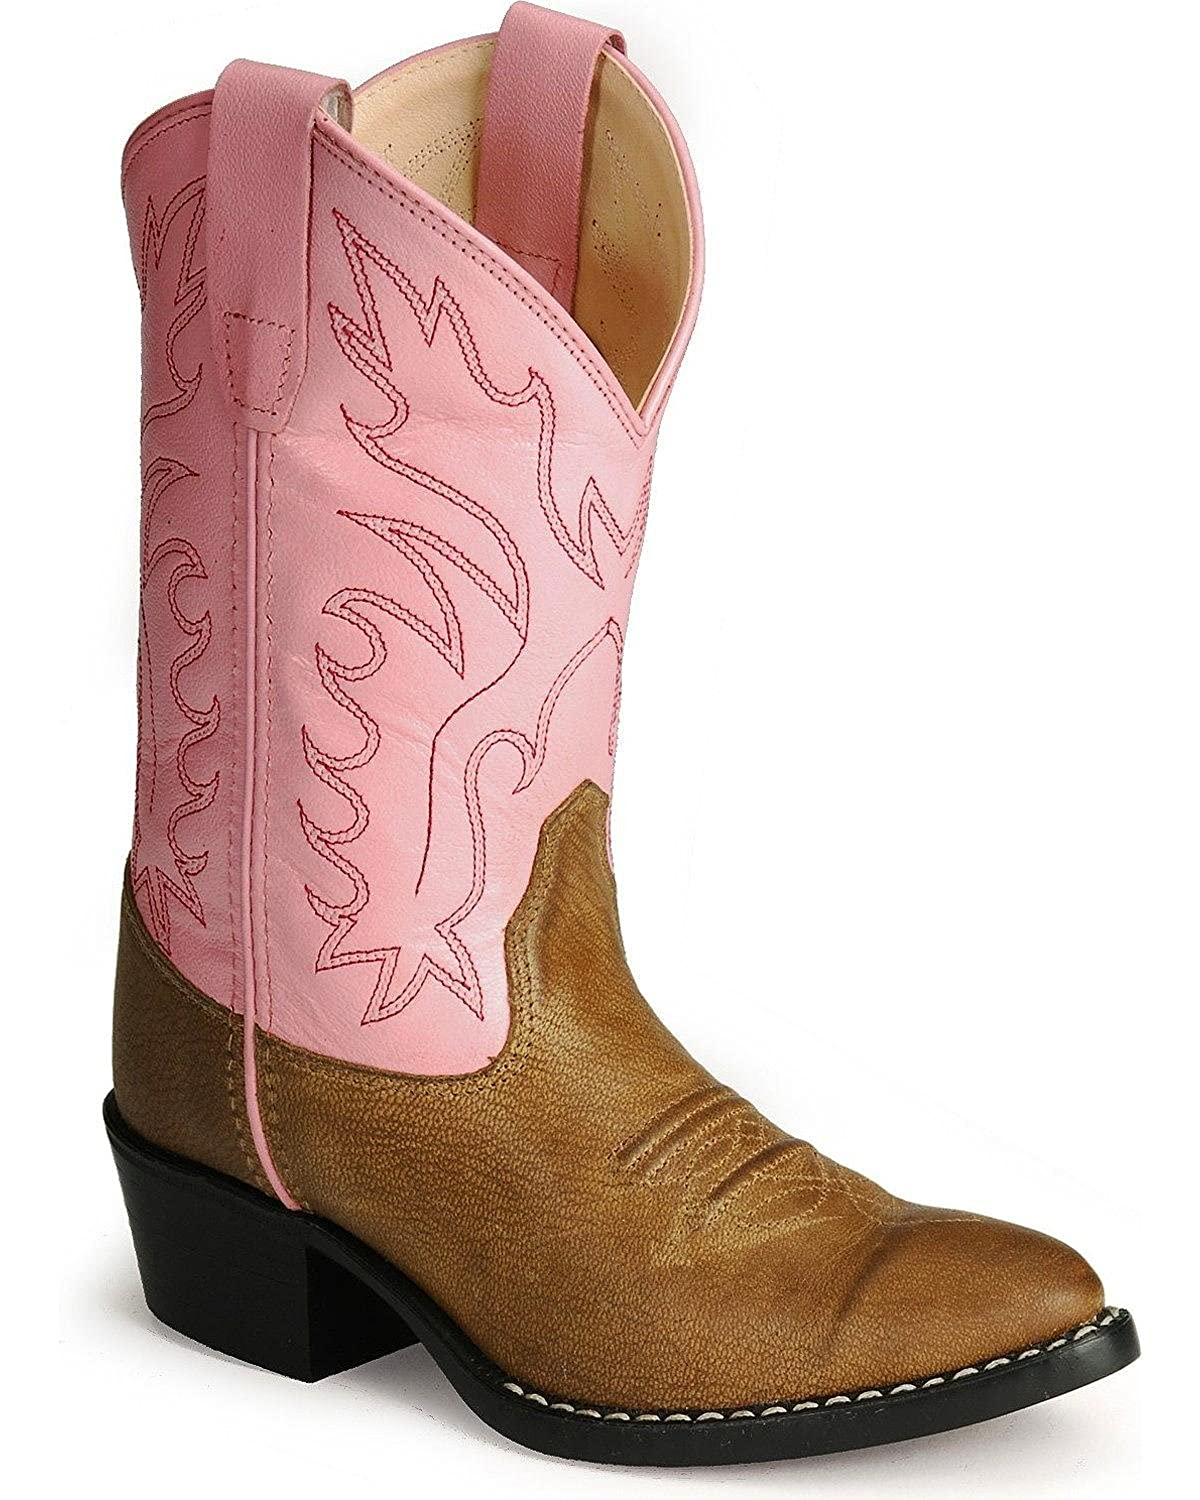 quite nice classic fit reasonable price Girls Leather Cowboy Boots in Pink & Brown 9 M US Toddler